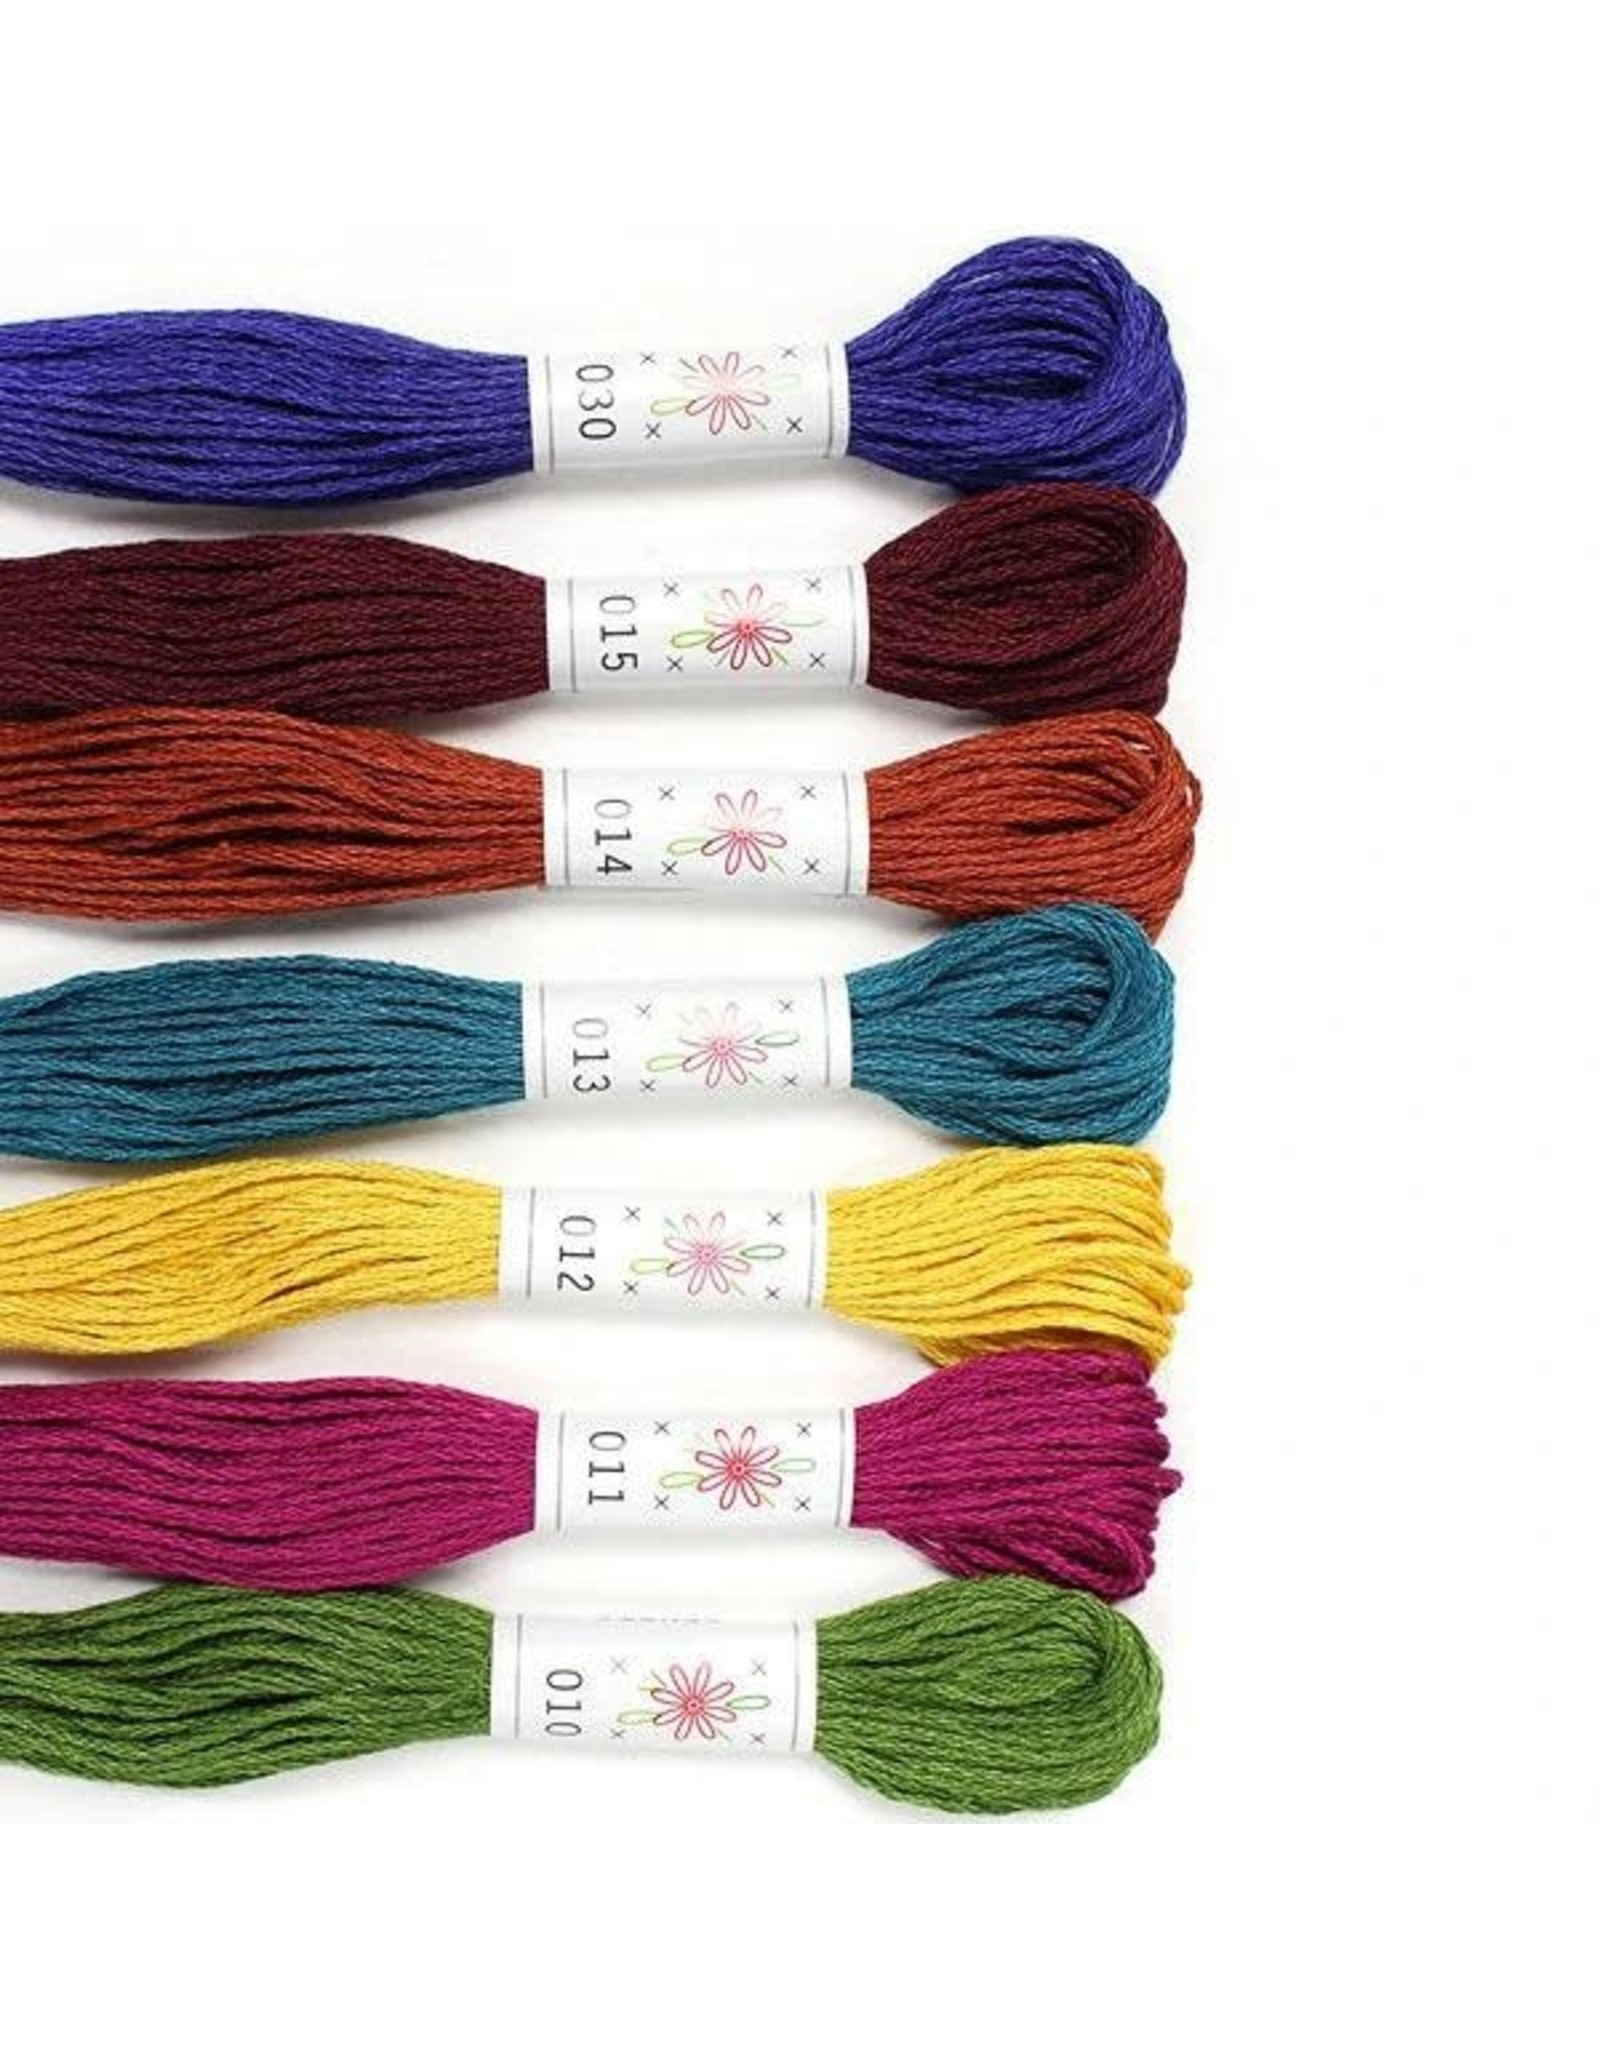 Sublime Stitching Embroidery Floss Set, Laurel Canyon Palette - Seven 8.75 yard skeins